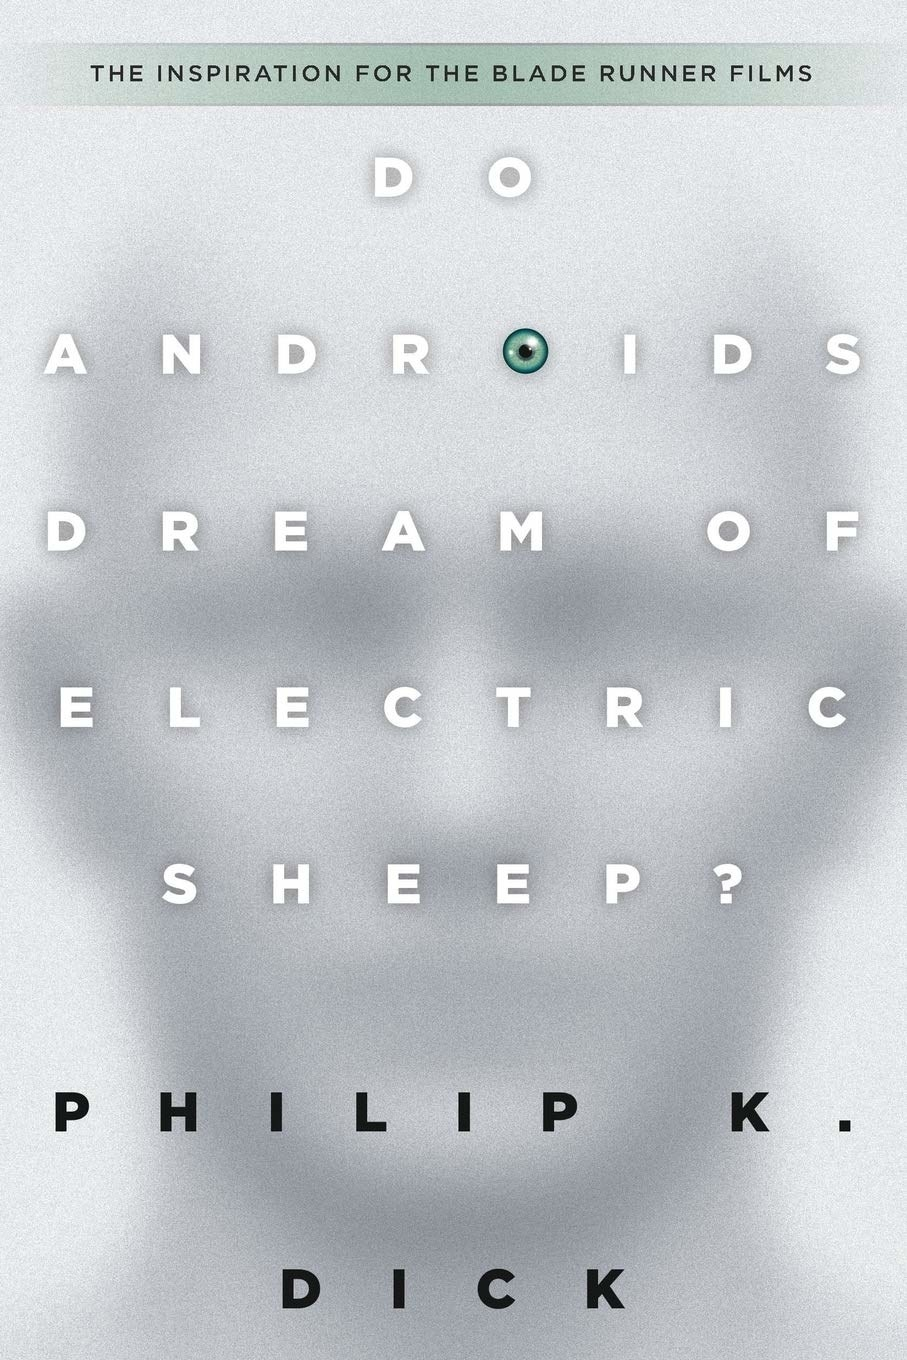 the cover of philip k dick's do androids dream of electric sheep